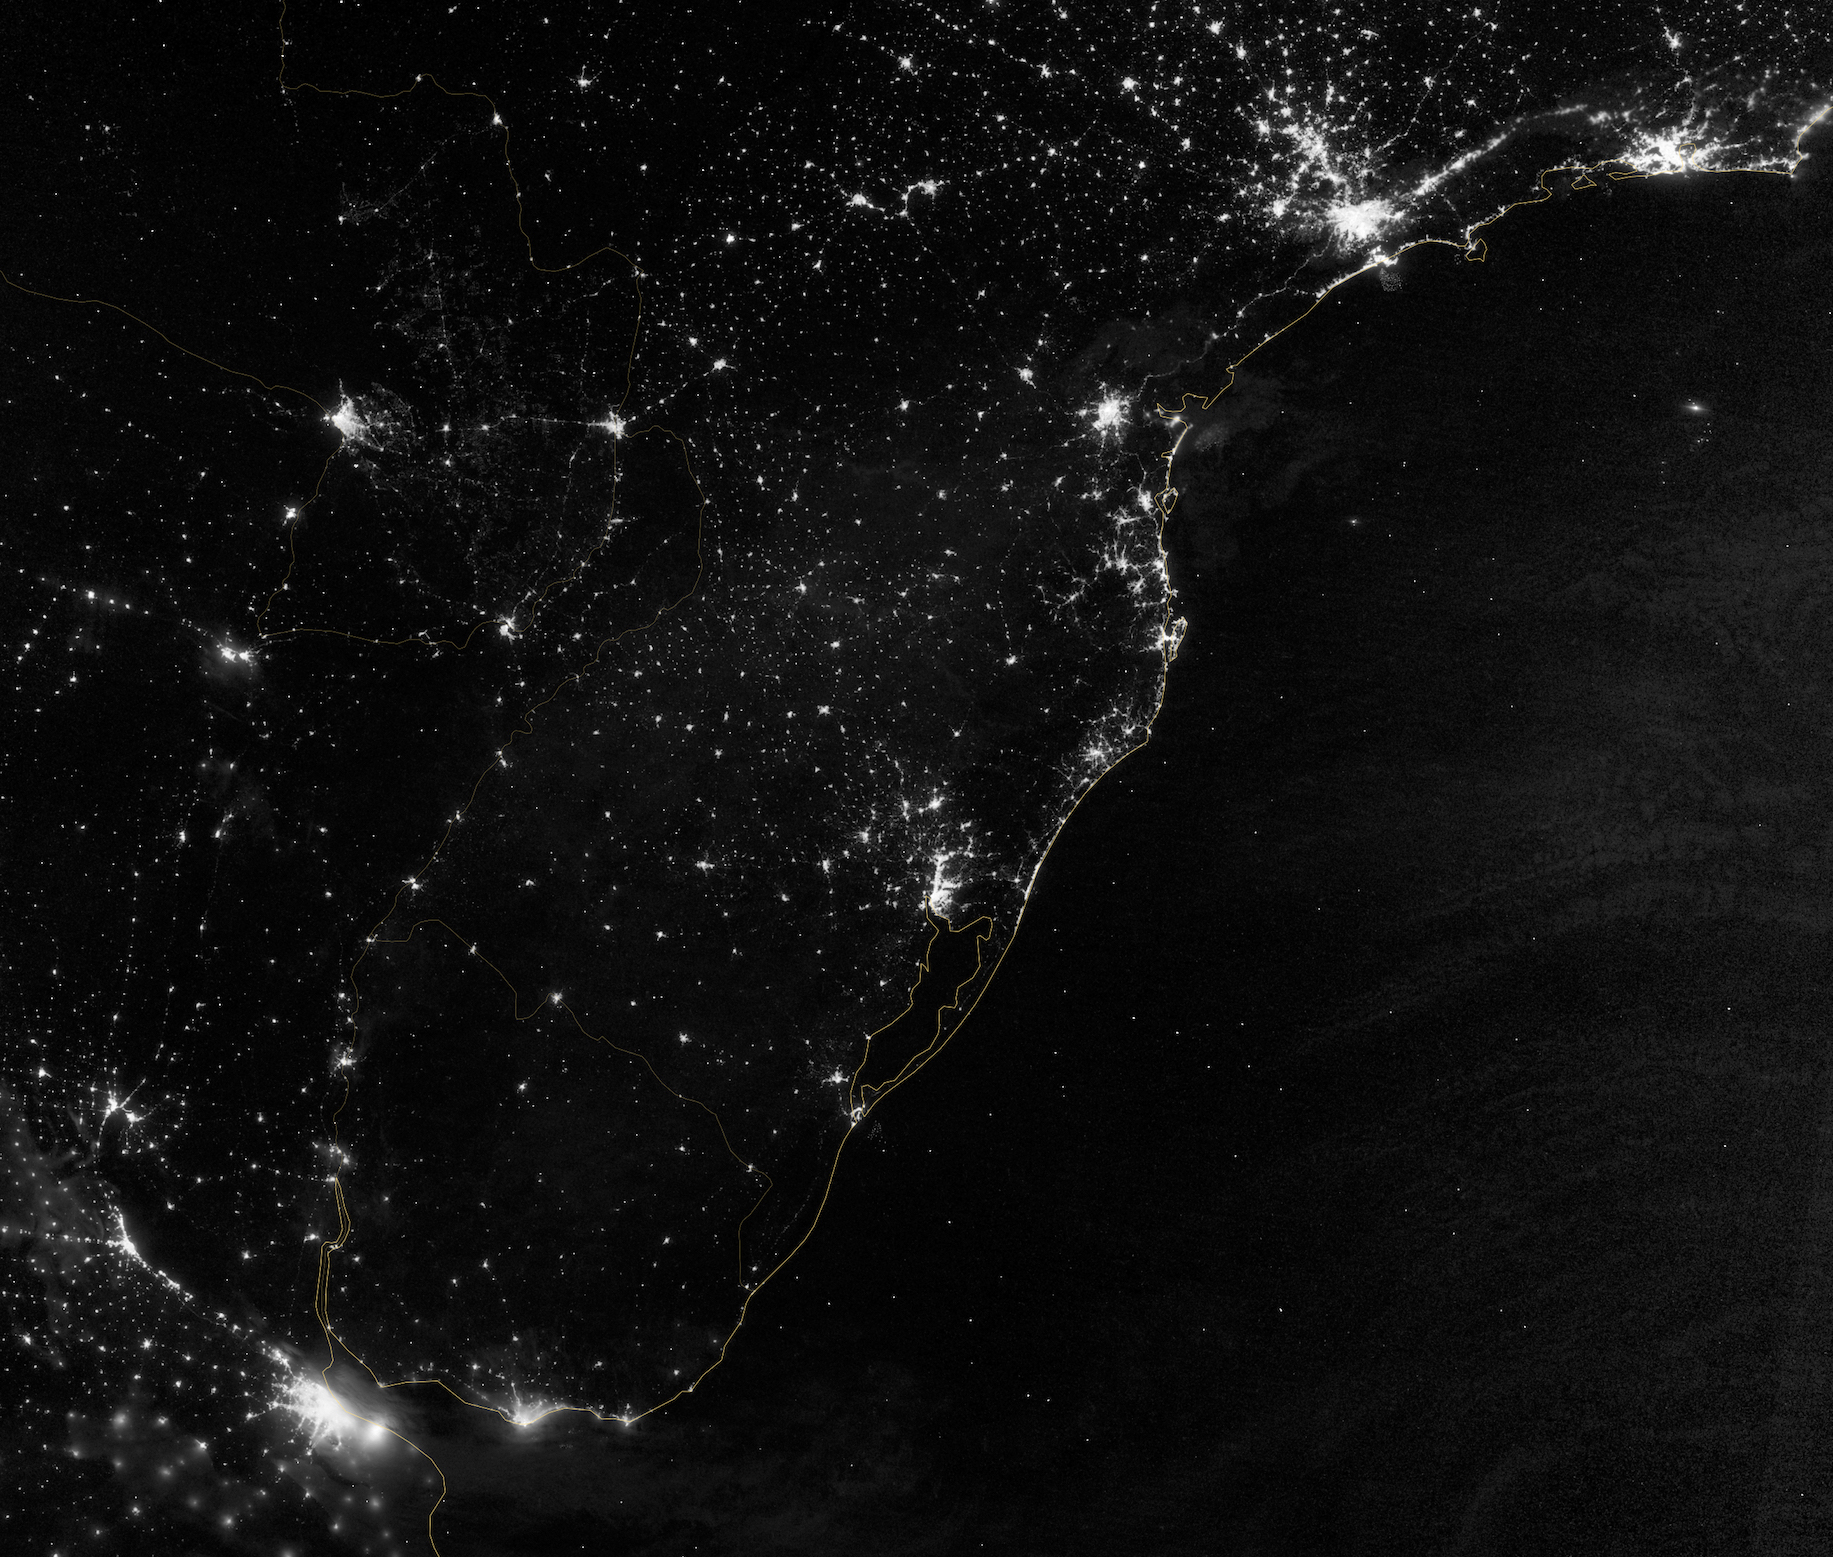 Today's Image of the Day comes from the NASA Earth Observatory and features a look at the Atlantic coast of South America at night.